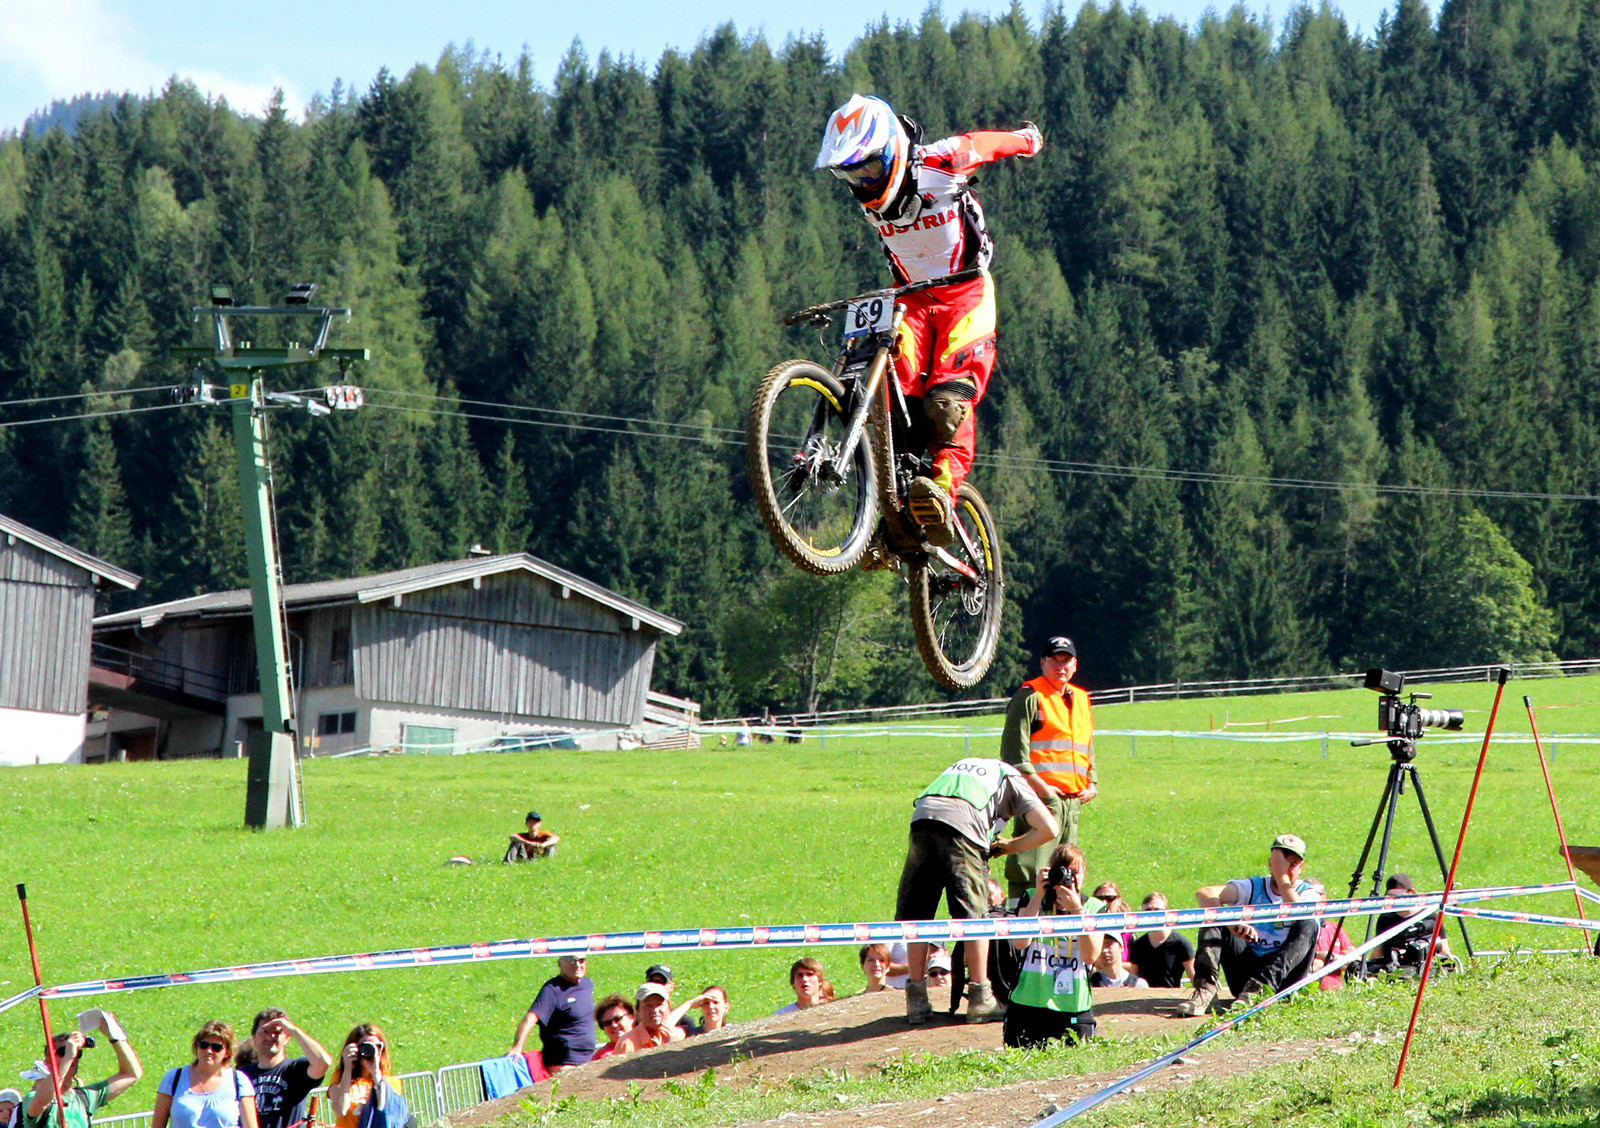 Manuel Gruber at Leogang`s DH worlds... - The Gap - Mountain Biking Pictures - Vital MTB